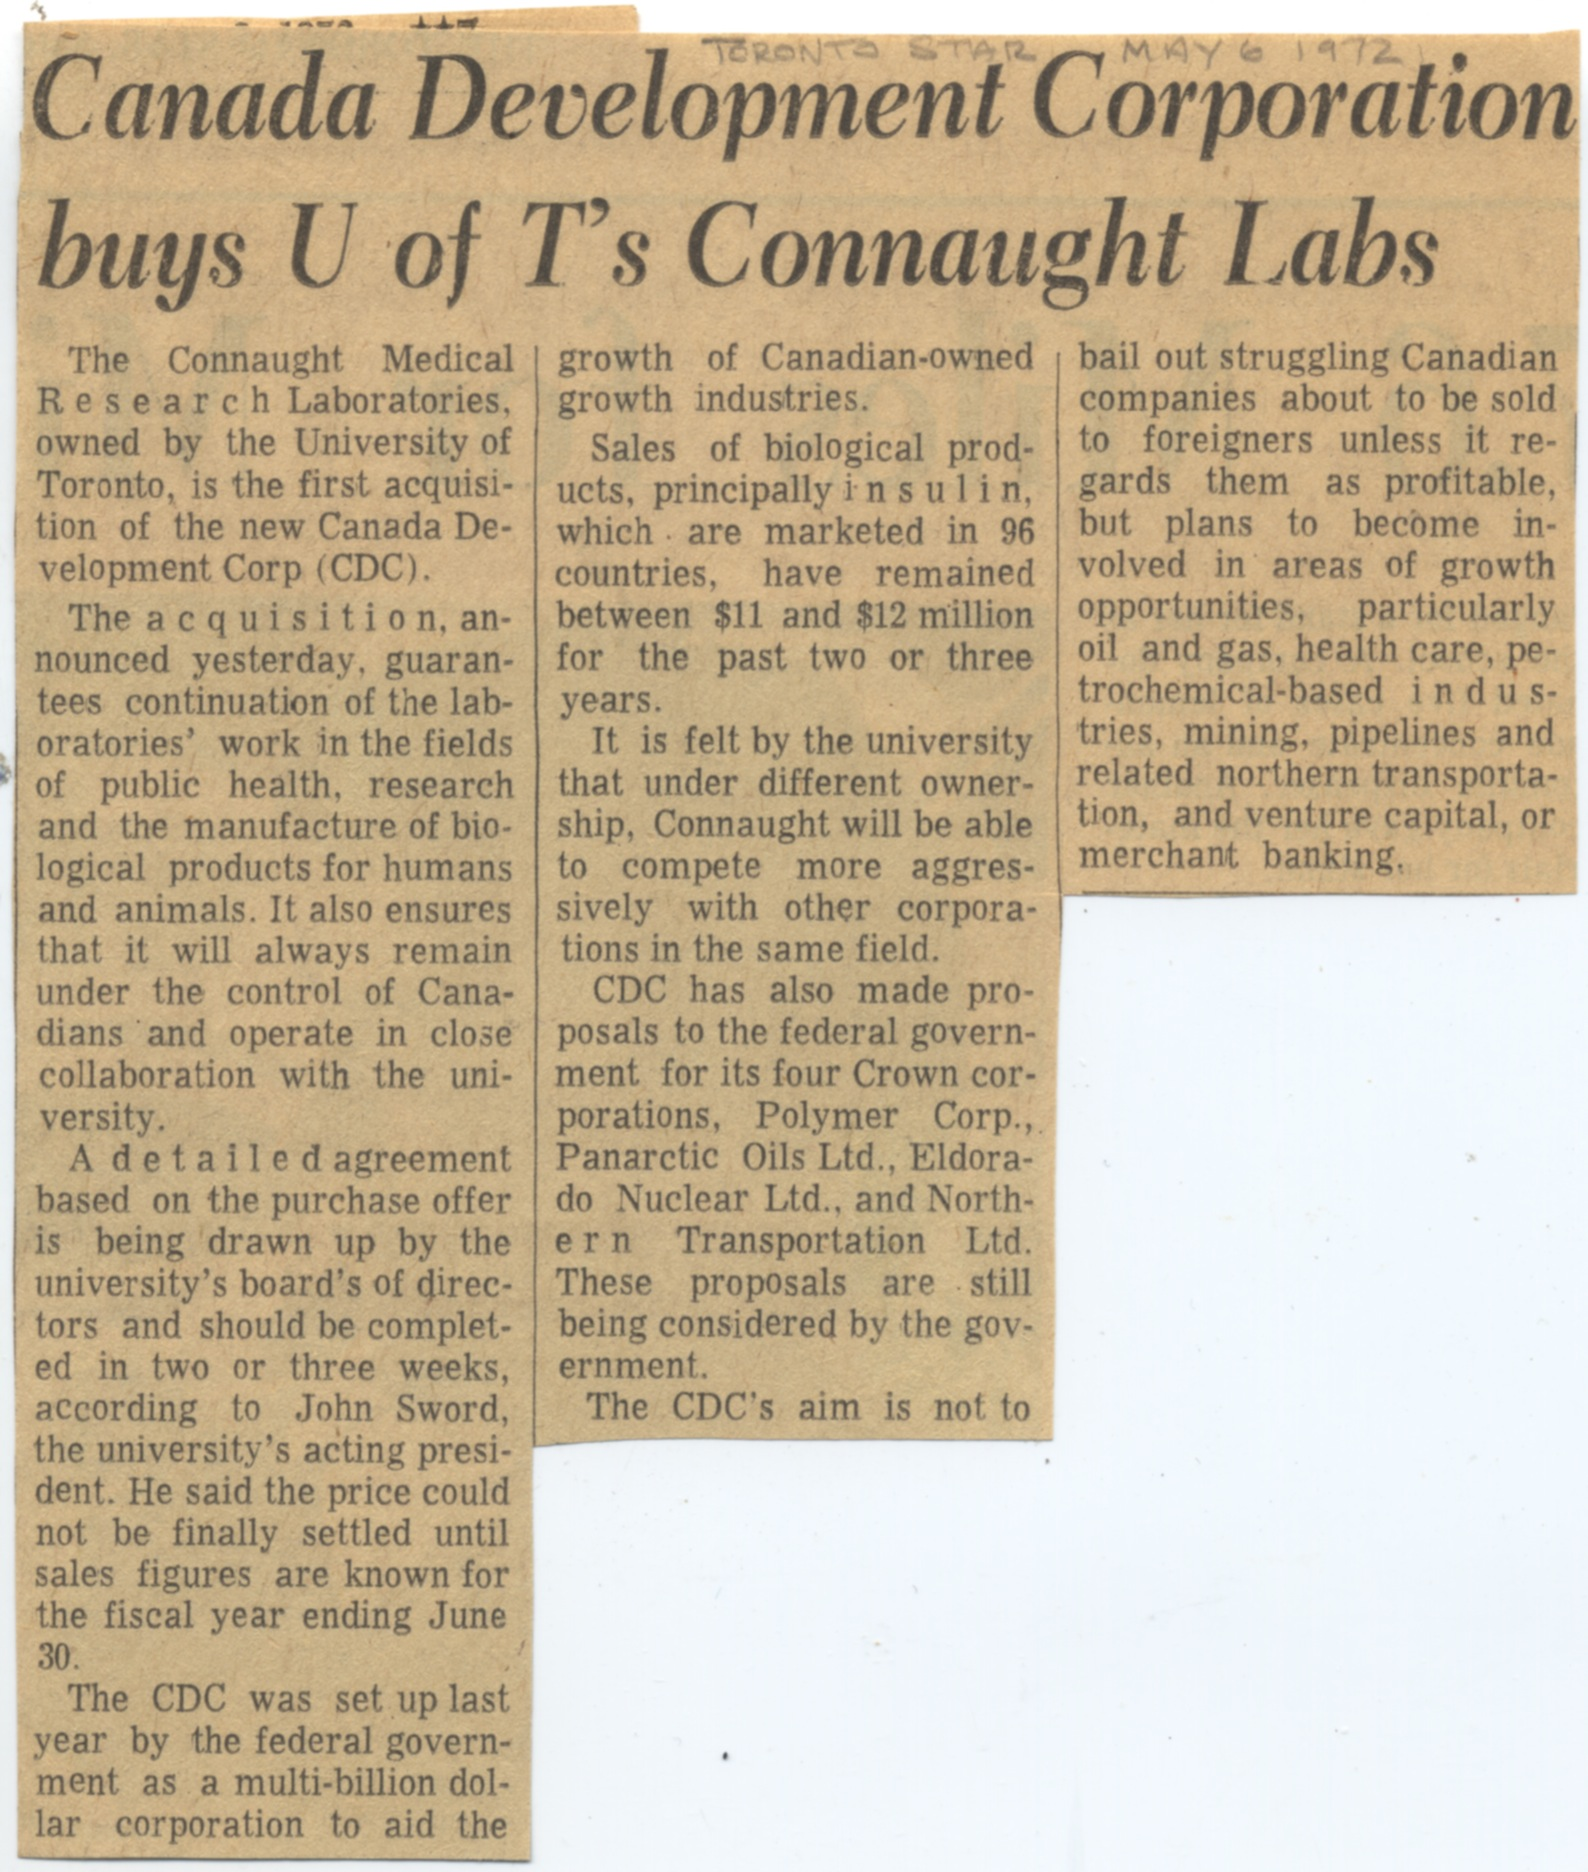 Clipping from the Toronto Star from May 6, 1972, announcing the University of Toronto's intention to accept the Canada Development Corporation's offer to purchase Connaught Laboratories.